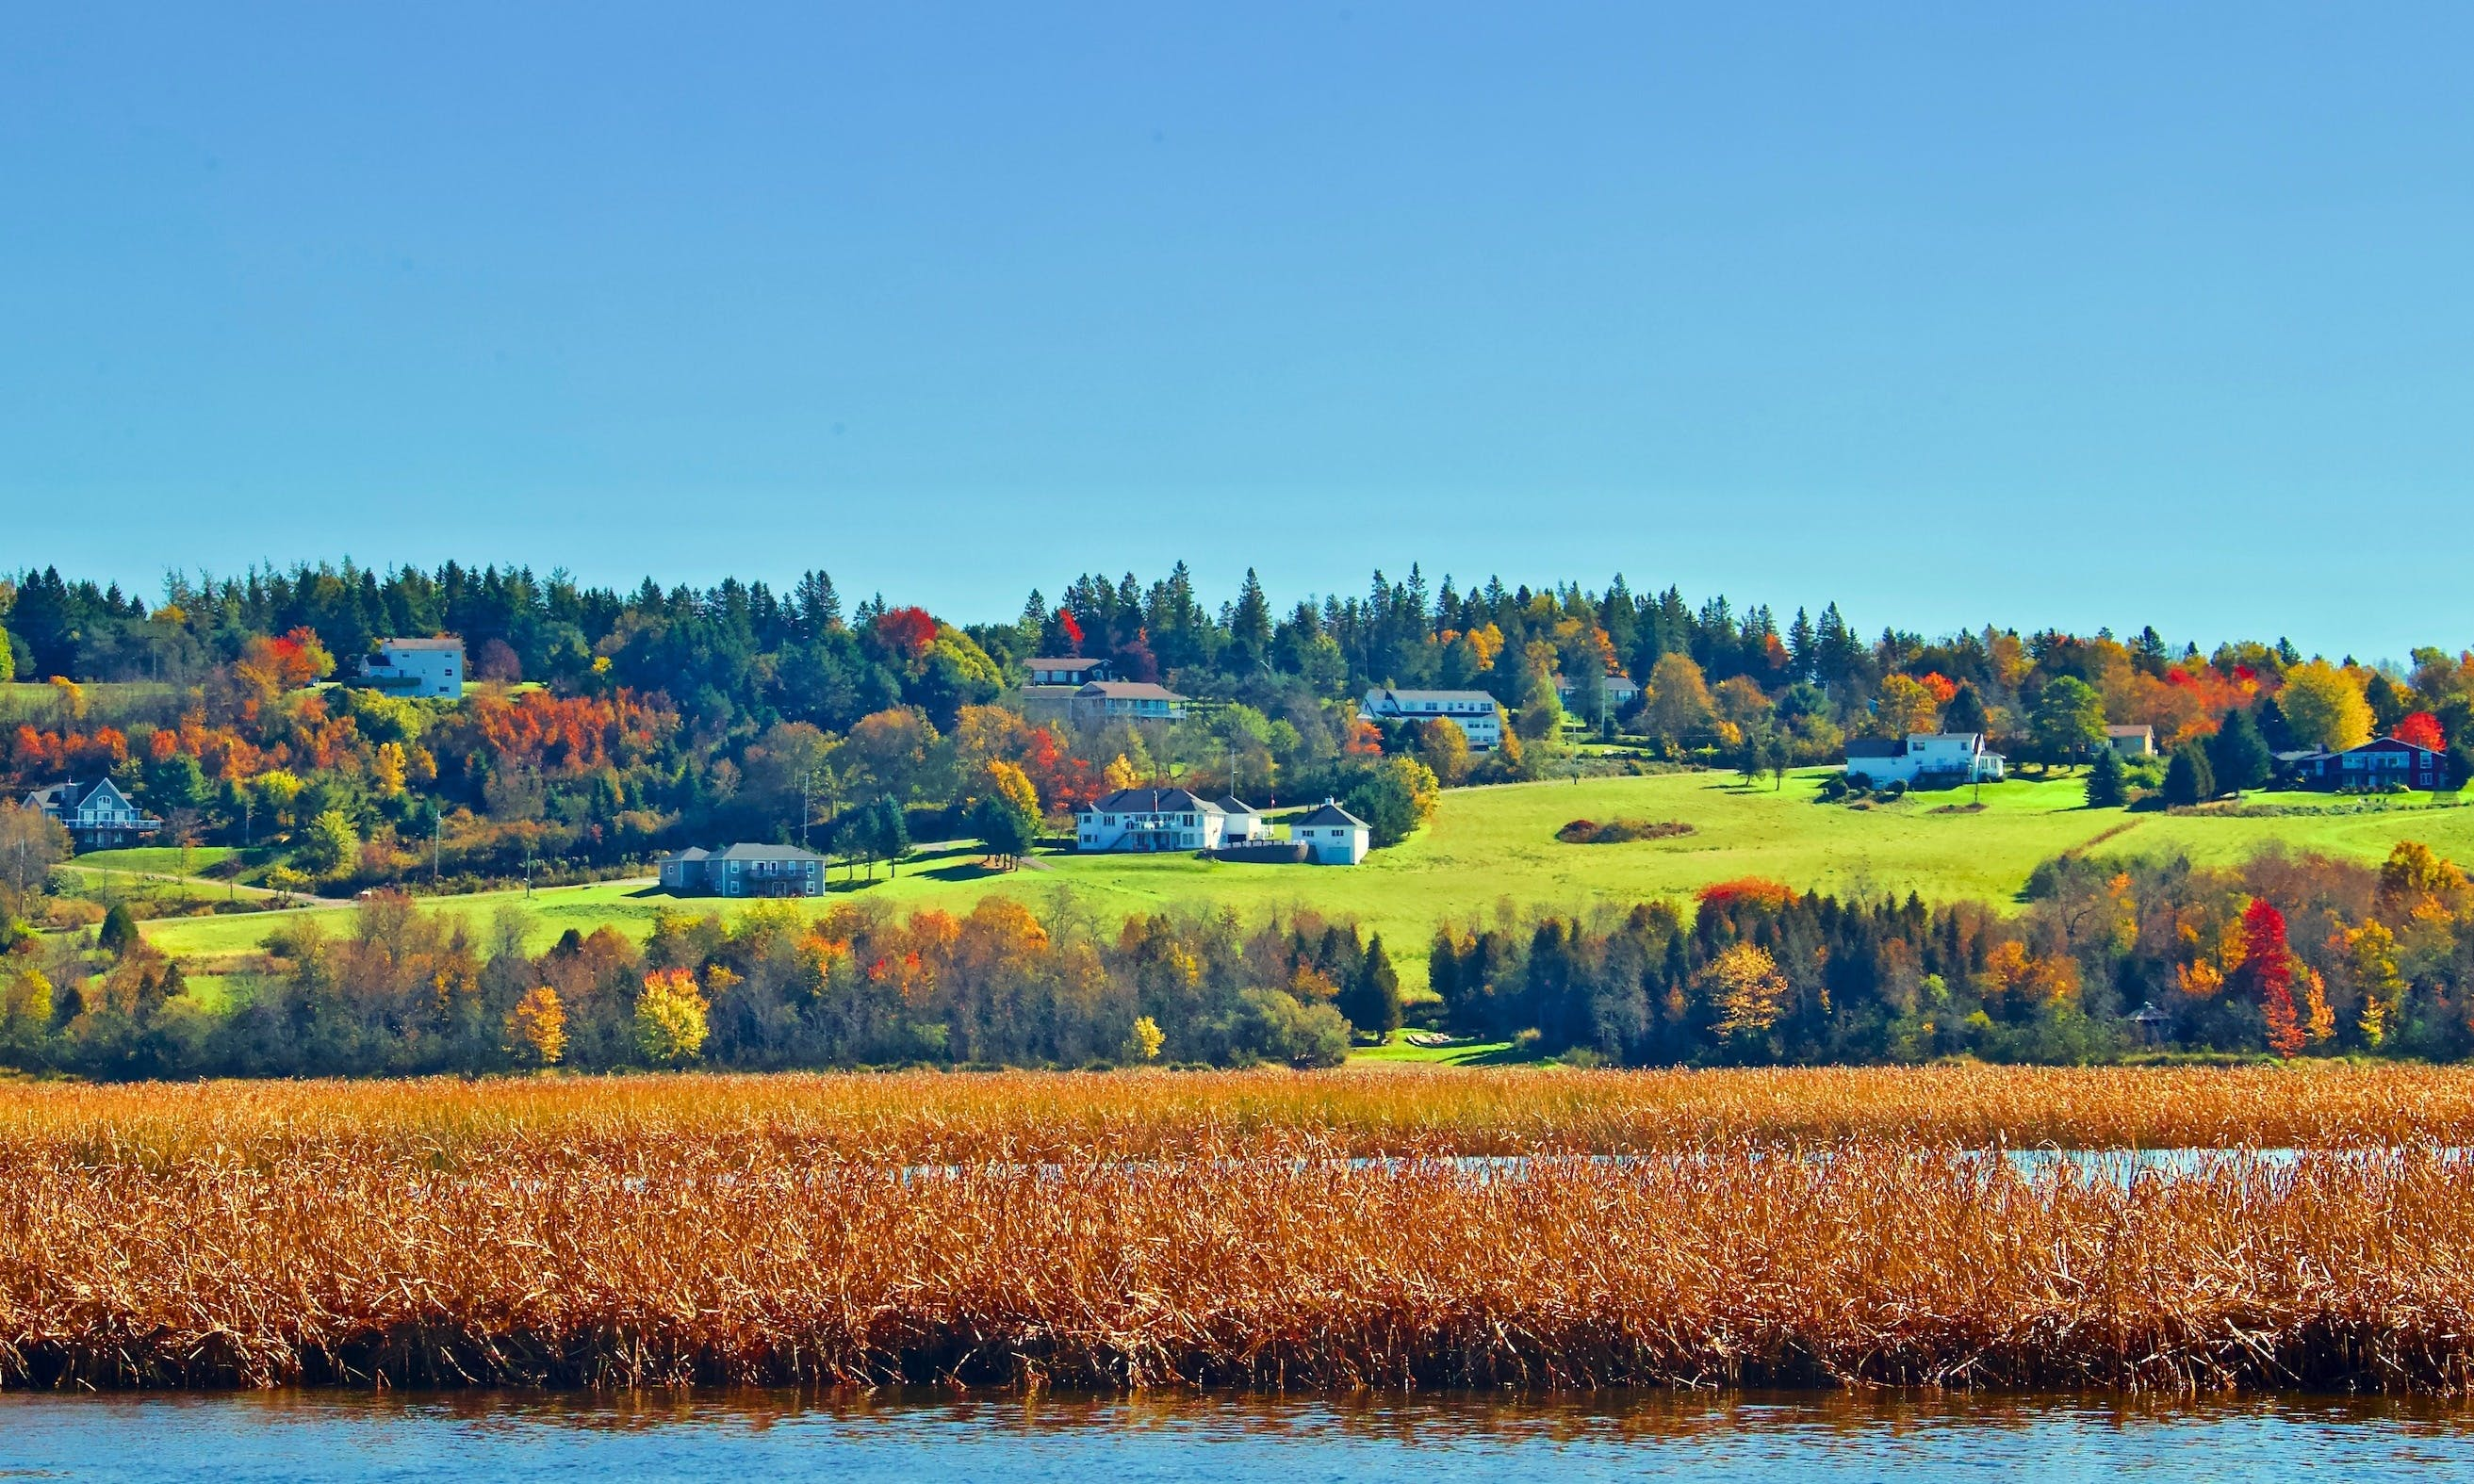 Sightseeing Tour along the Kennebecasis River